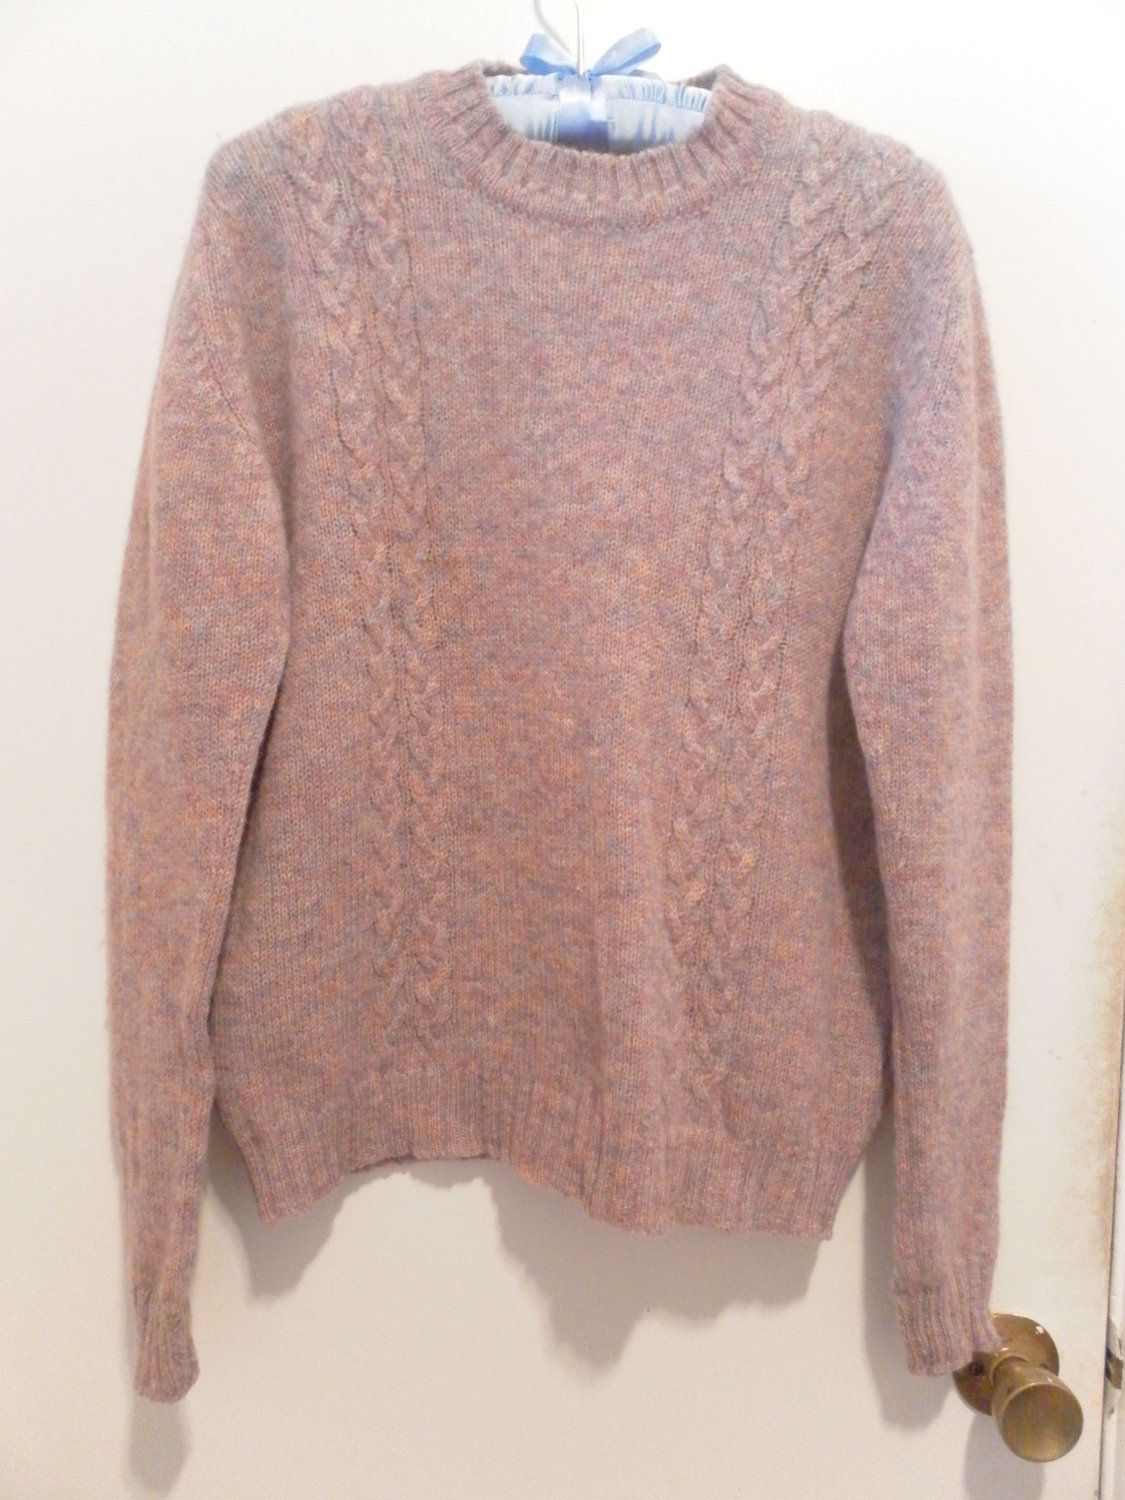 Vintage Shetland Wool Cable Knit Sweater Made In Scotland For The